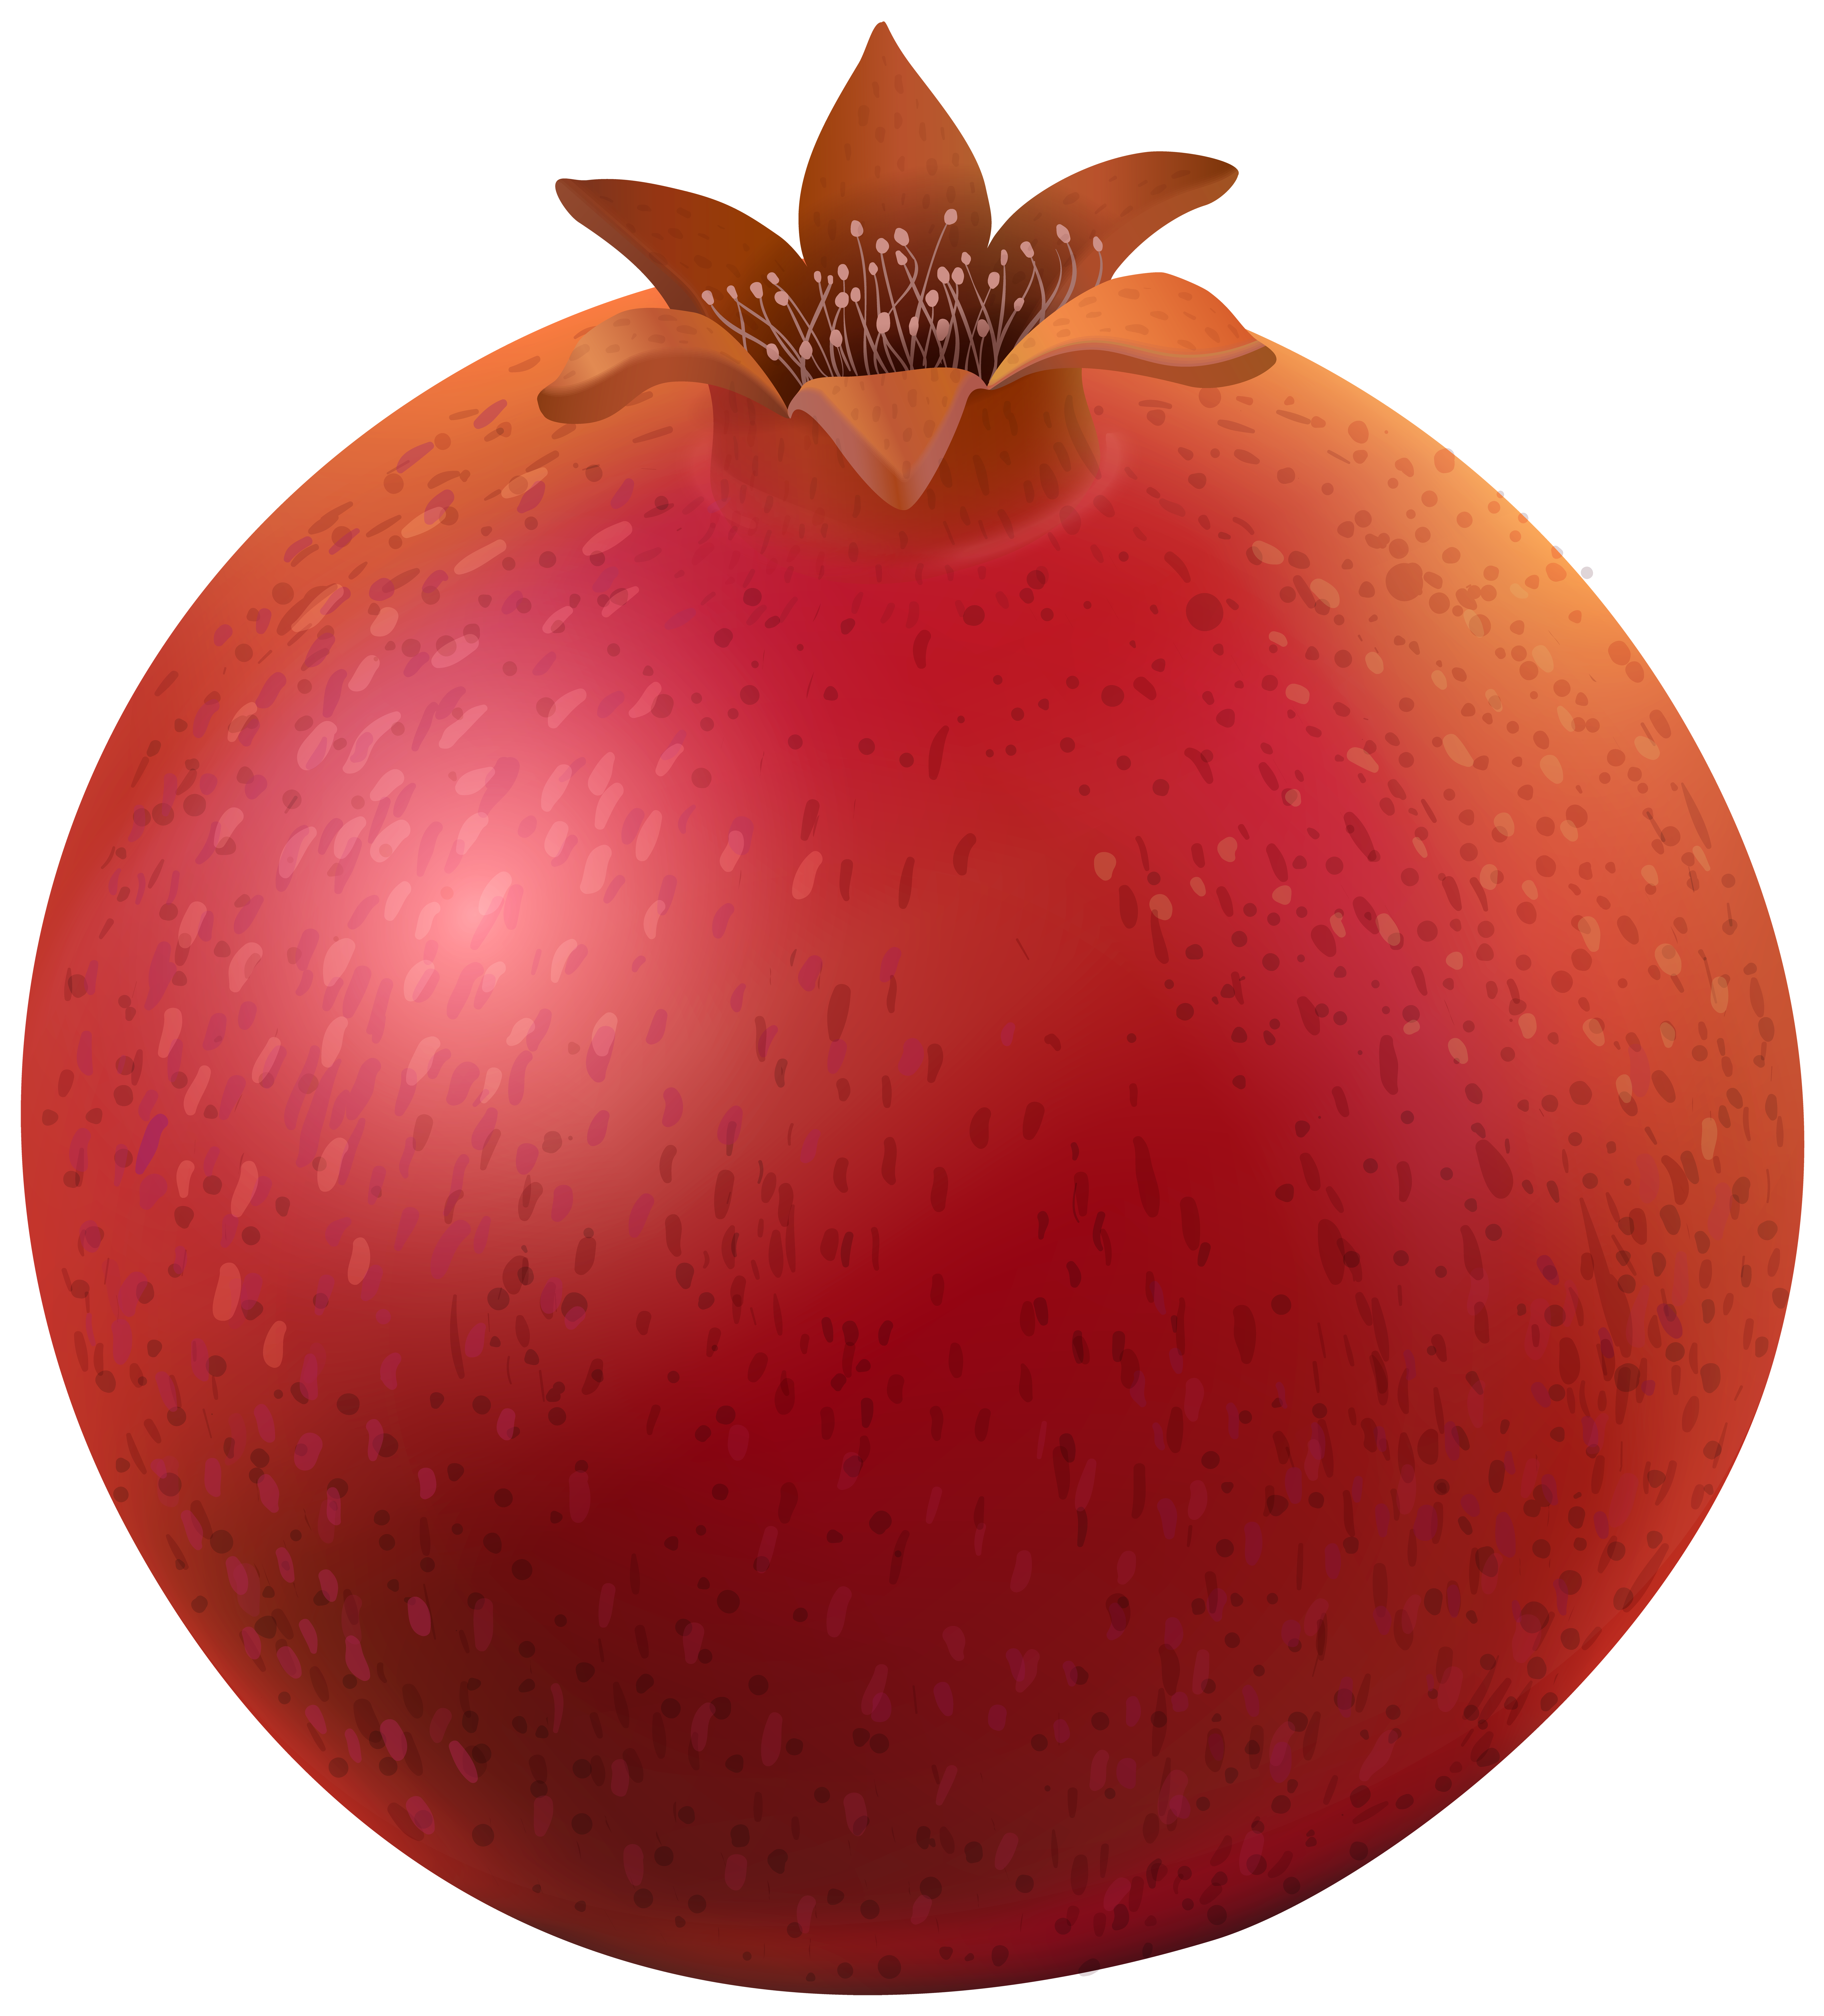 royalty free download Pomegranate clipart. Png clip art image.